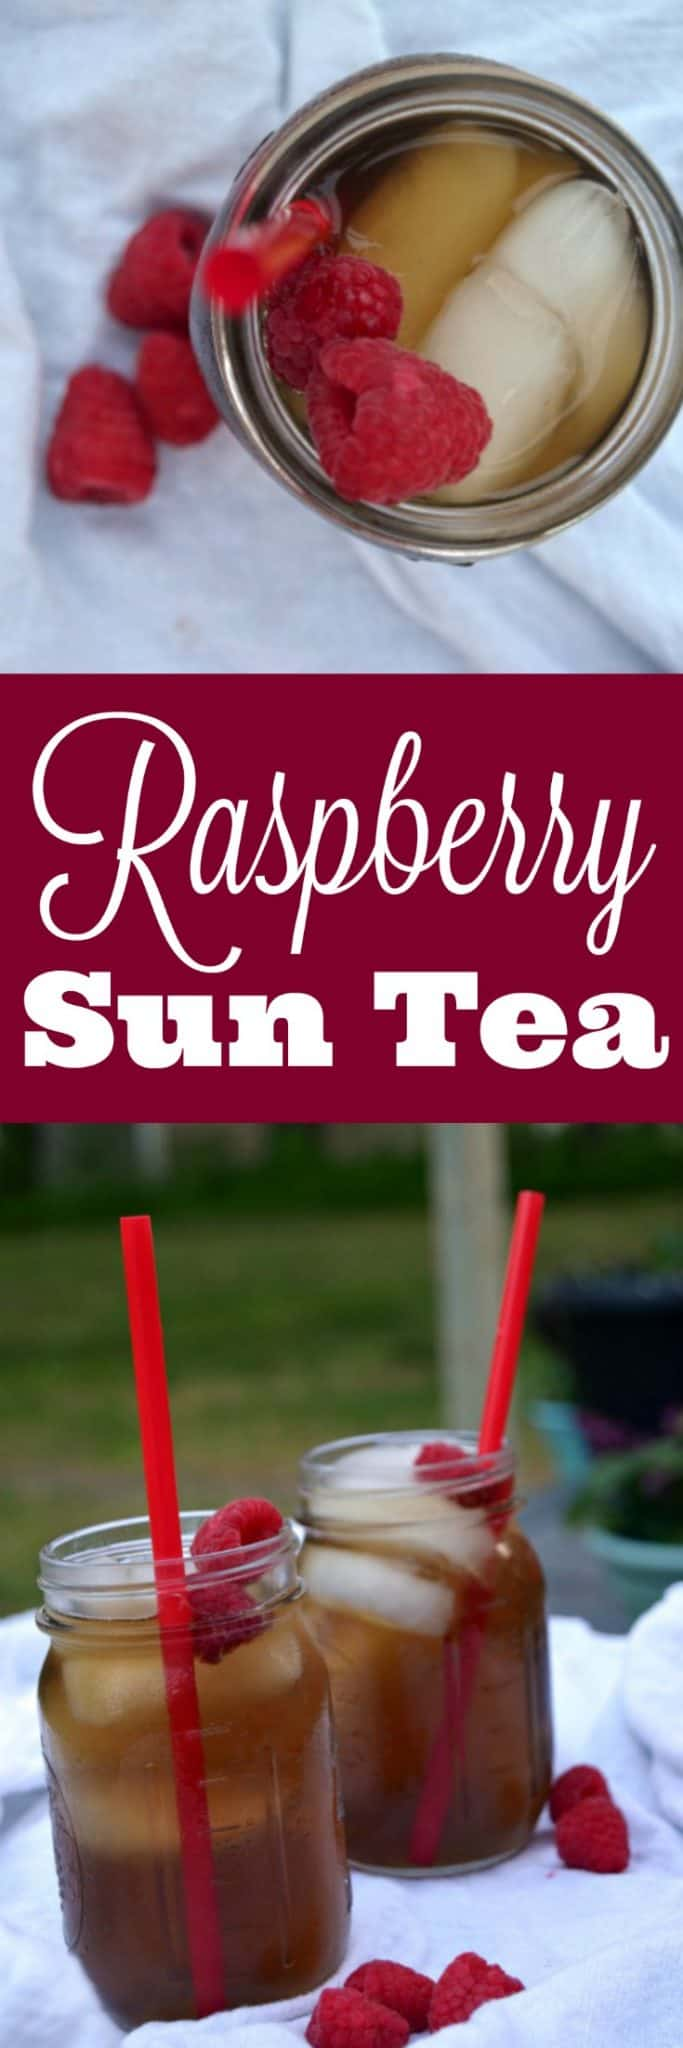 Raspberry Sun Tea - Iced Tea Recipe - Raspberry Unsweet Tea - Raspberry Sweet Tea -Iced Tea Recipe Easy - Raspberry Iced Tea